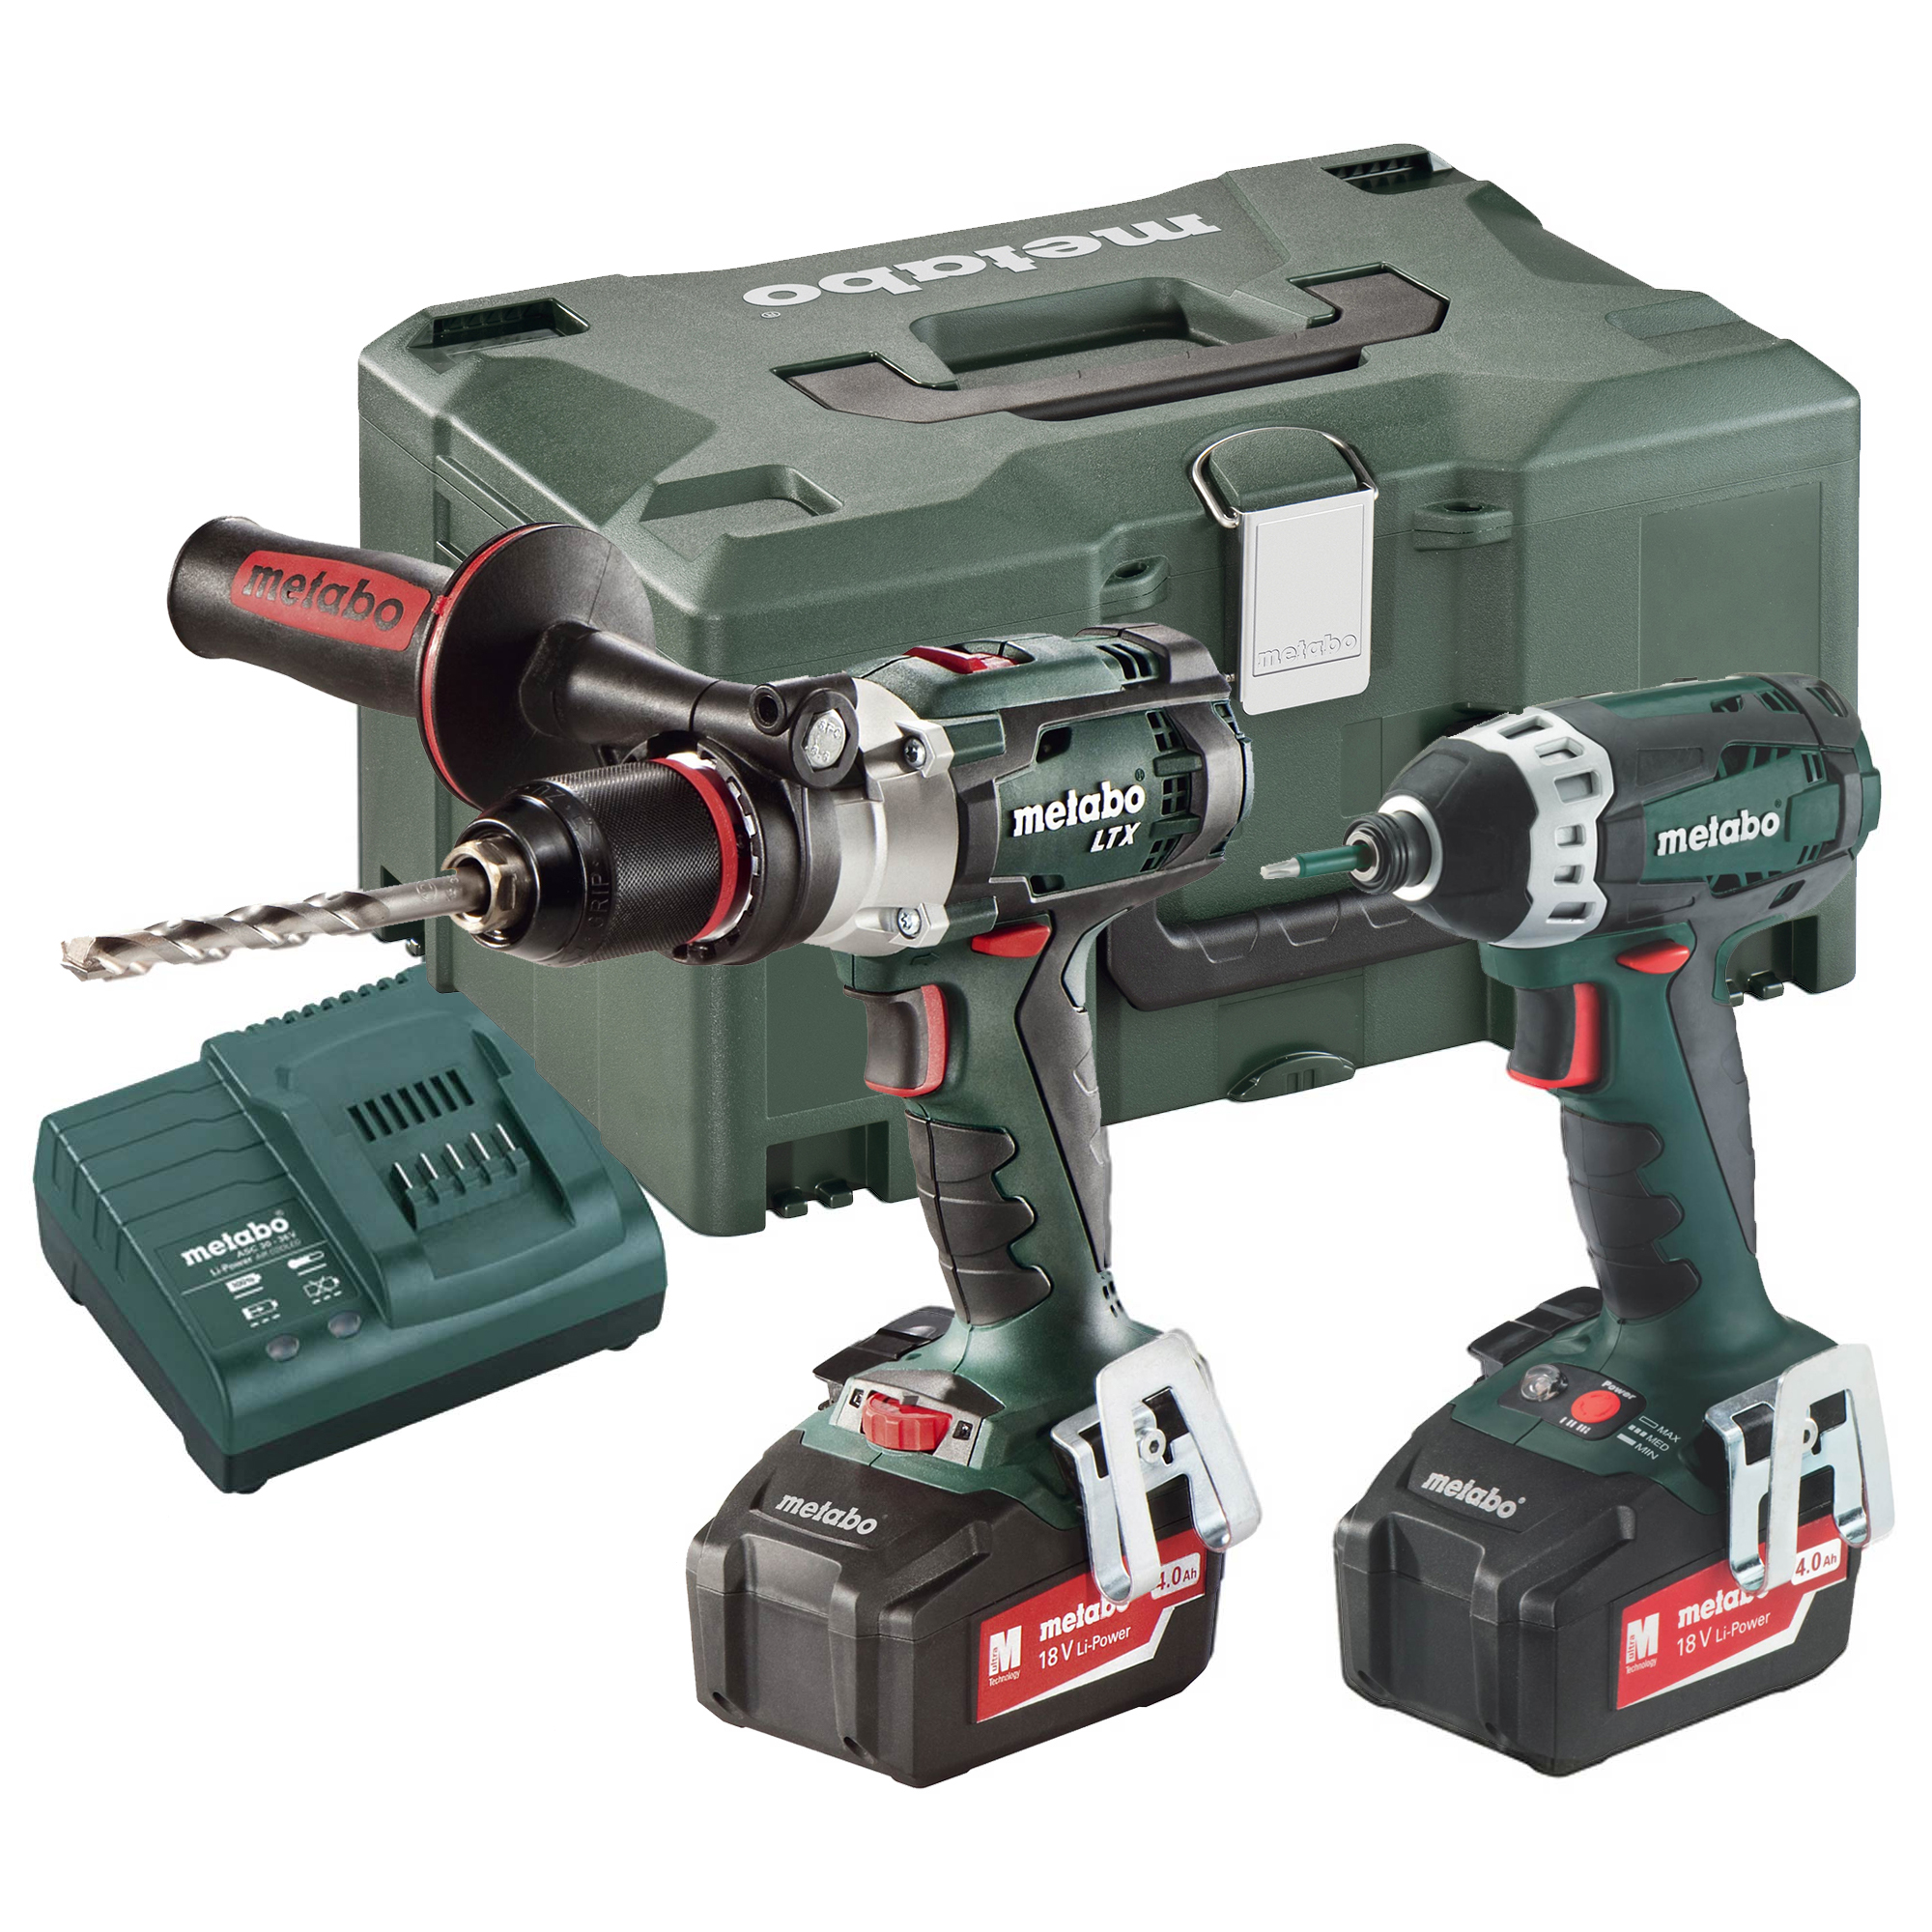 metabo combo set 2 1 6 metabo 18v heavy duty li ion 2 piece kit. Black Bedroom Furniture Sets. Home Design Ideas